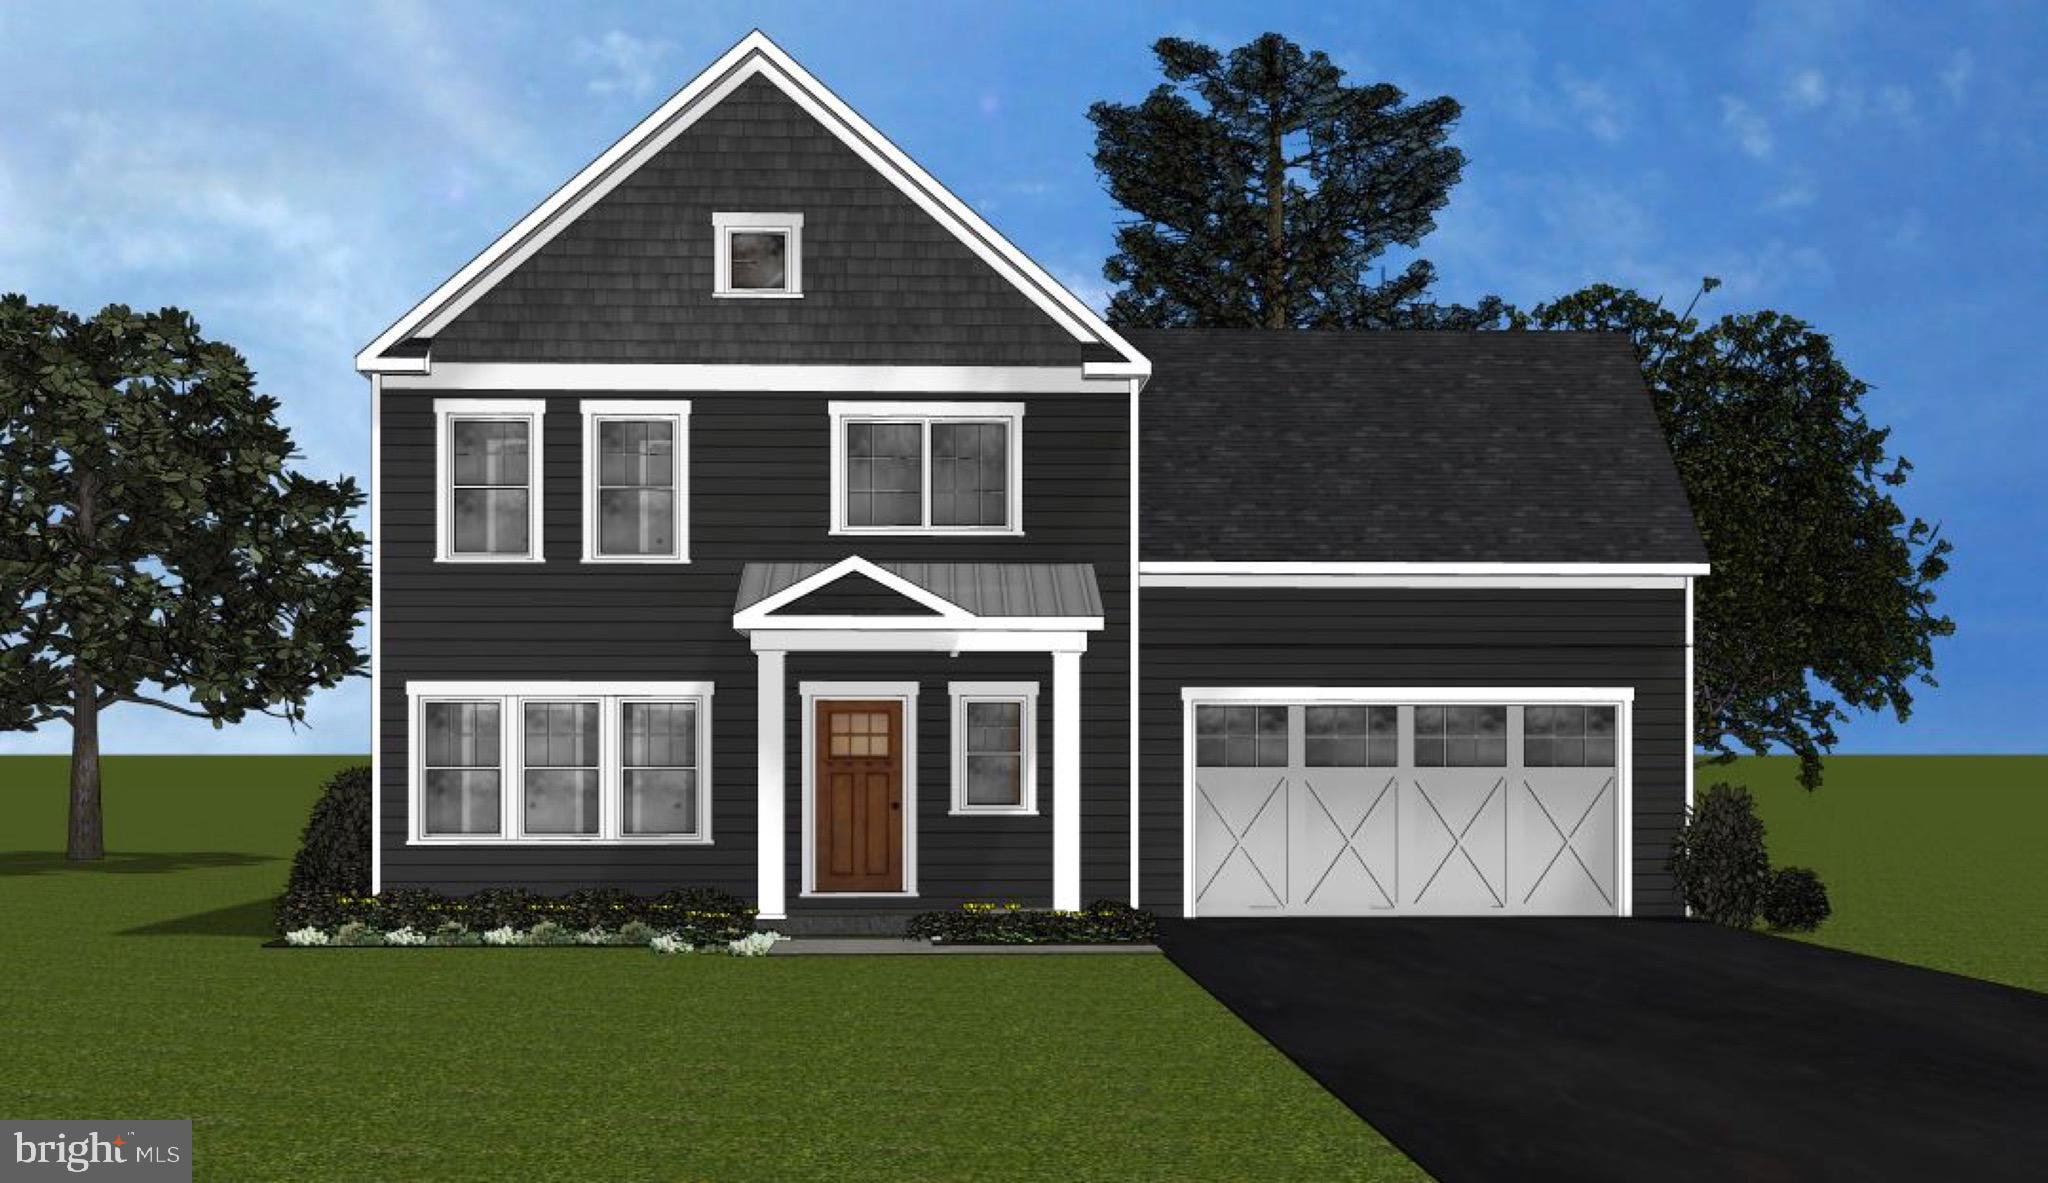 NEW CONSTRUCTION to-be-built Rockport Model -- Enjoy living near the water and the lifestyle of a water oriented community.    Hardwood Floors, granite countertops, Ceramic tile baths, recessed lighting and many other standard features.   Buyers can customize their selections and plans as part of the builder's contract process.     Construction perm financing required.   Buyer can receive $10,000 toward their selections when using the Builder's preferred lender(s) and title company.    Floorplans offer multiple additional options for a finished basement, optional additional bedrooms, etc.   Photos are representative of other homes by this builder or check out their site at whitehallbuilding